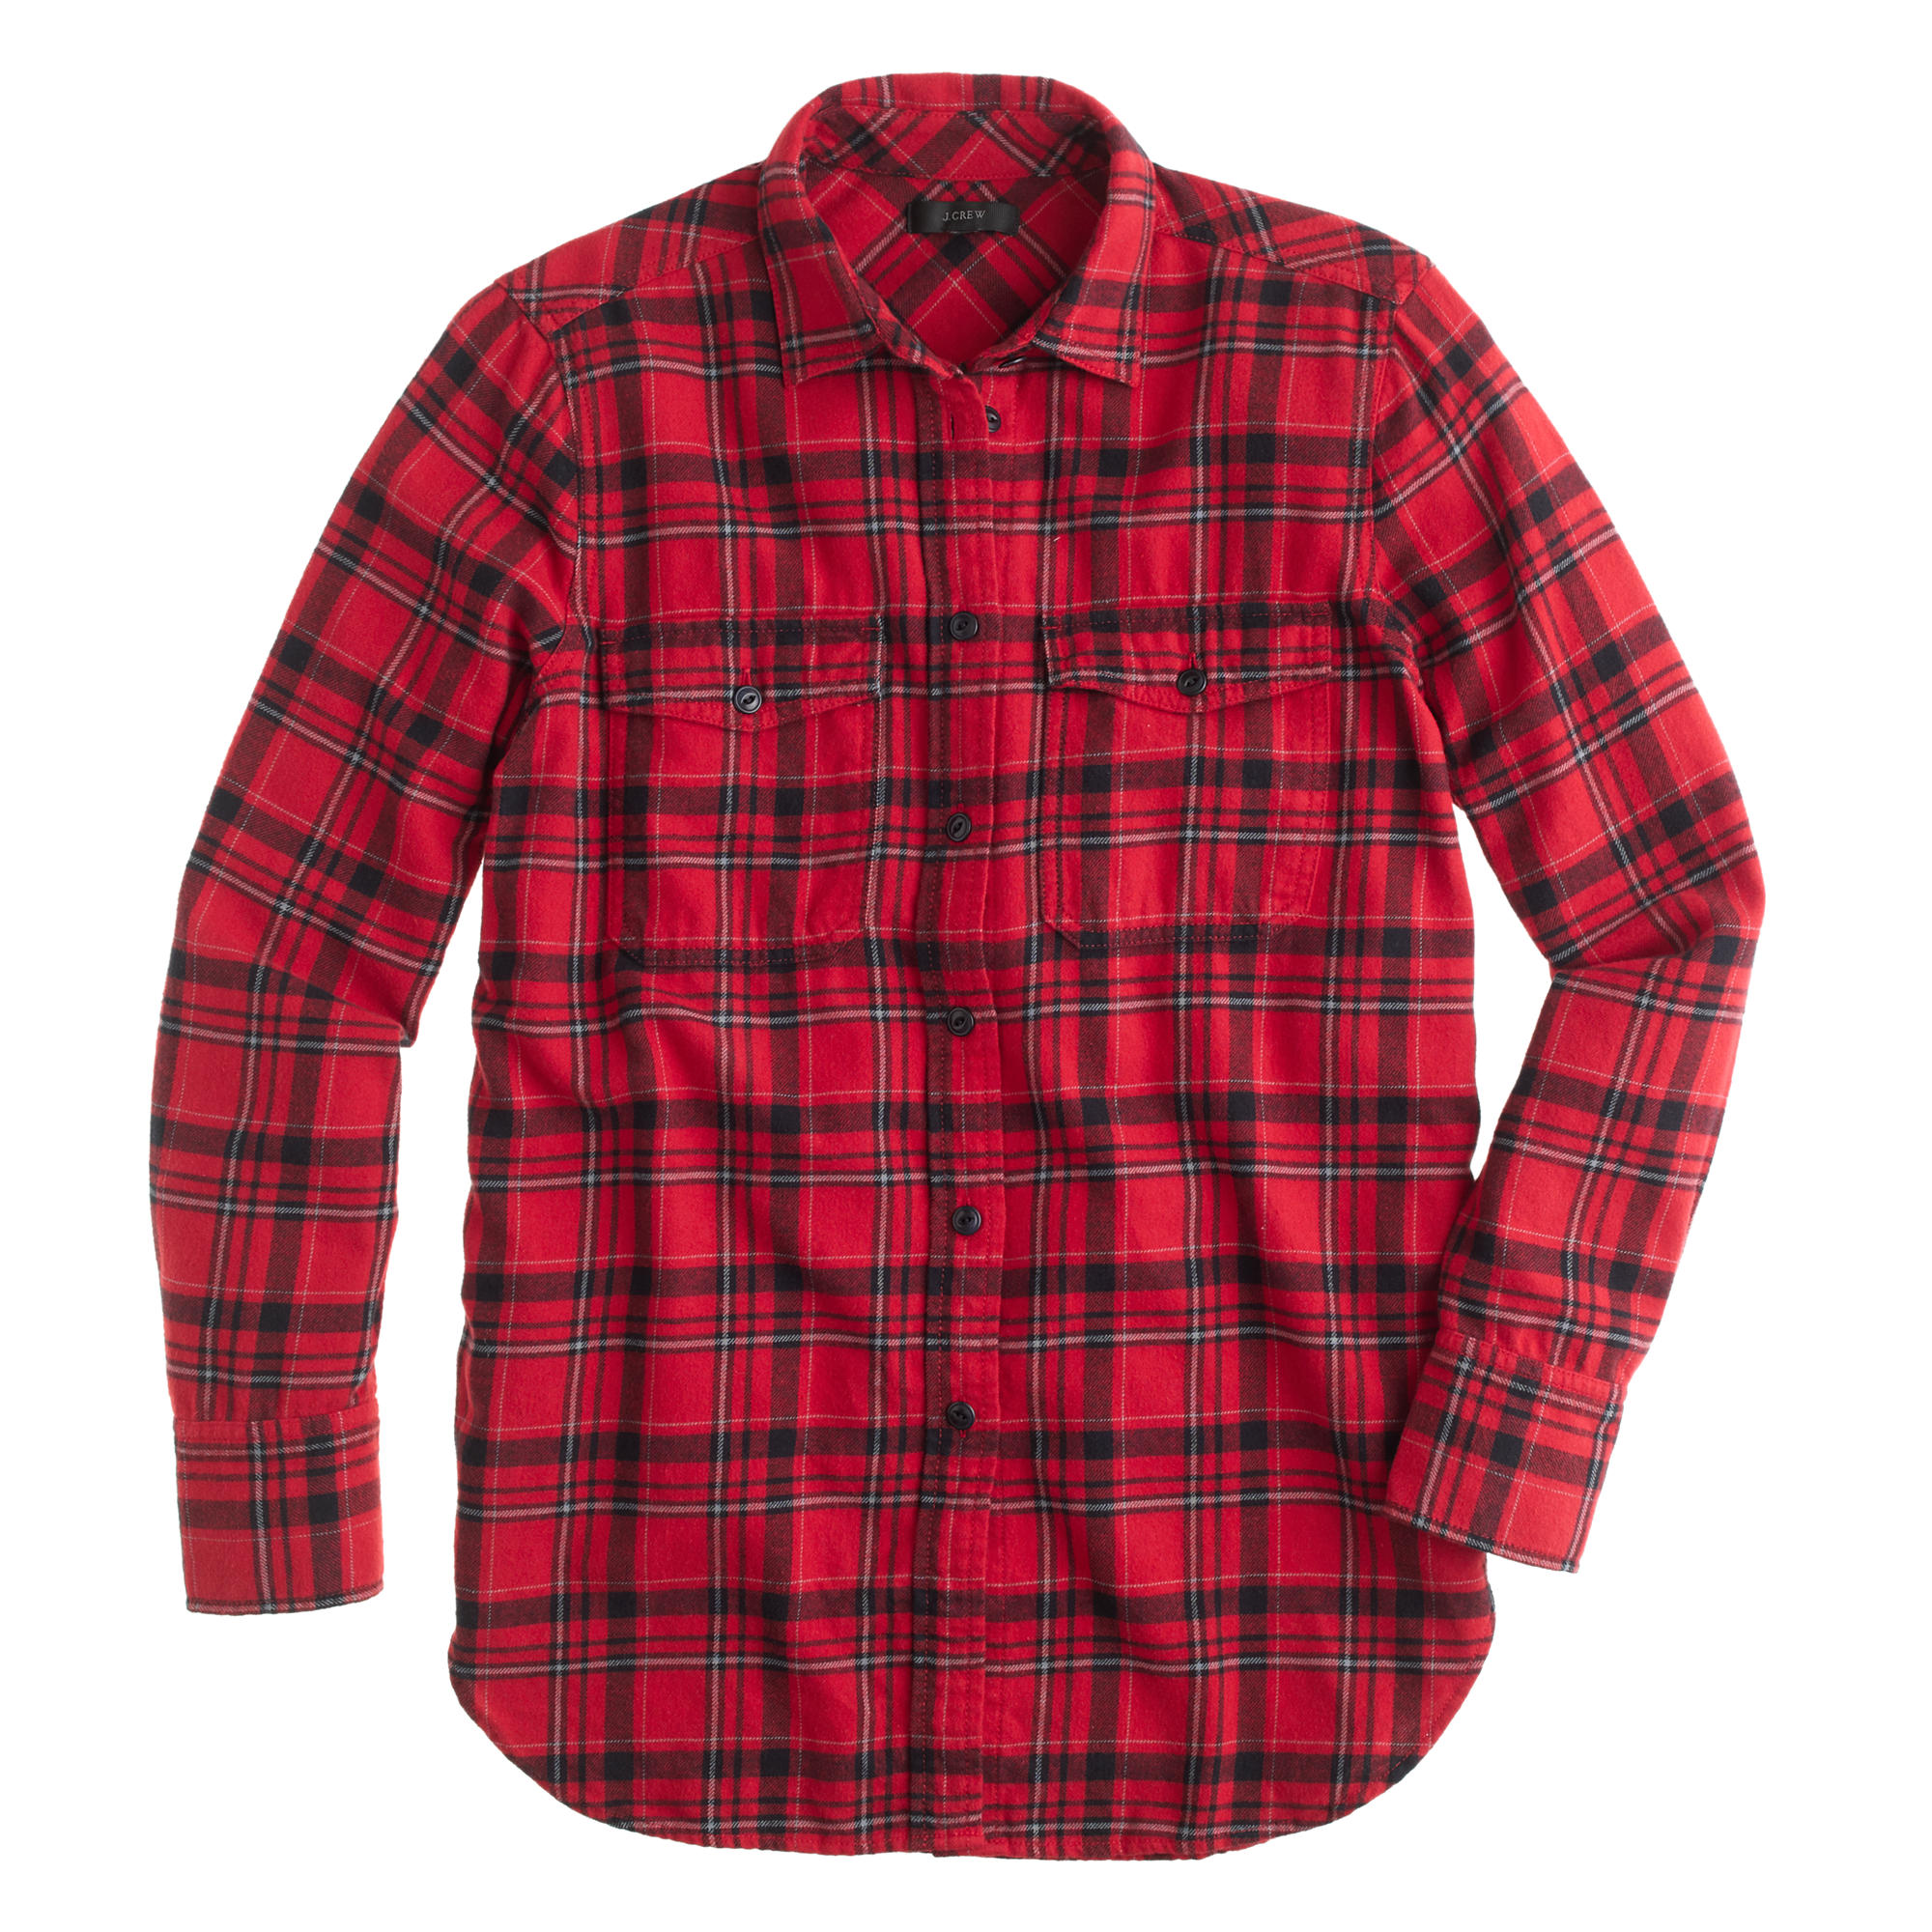 Find great deals on eBay for Red Plaid Flannel Shirt in Casual Shirts for Different Occasions. Shop with confidence.